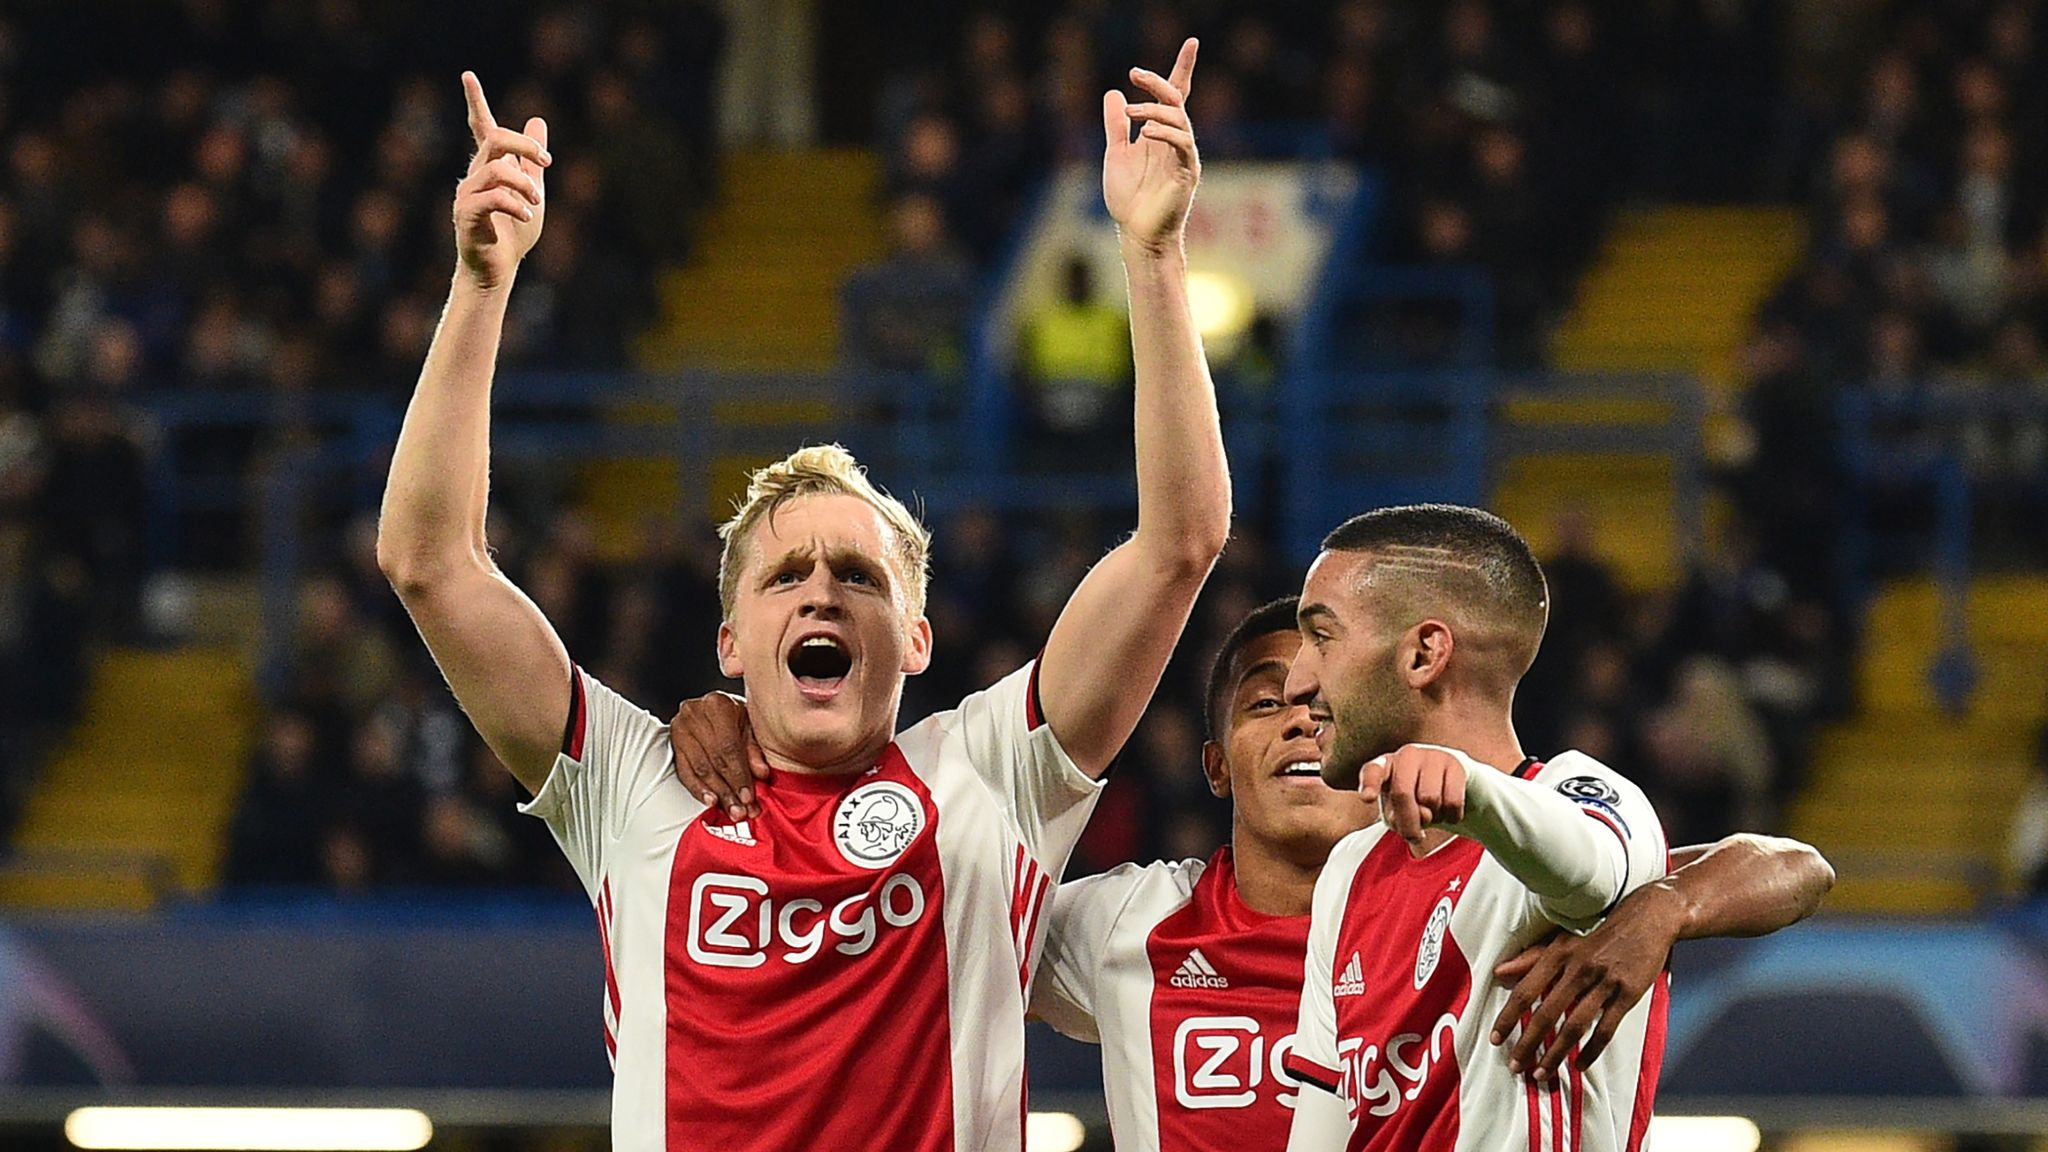 Ajax appeal to CAS over UEFA fan ban for Chelsea clash in Champions League